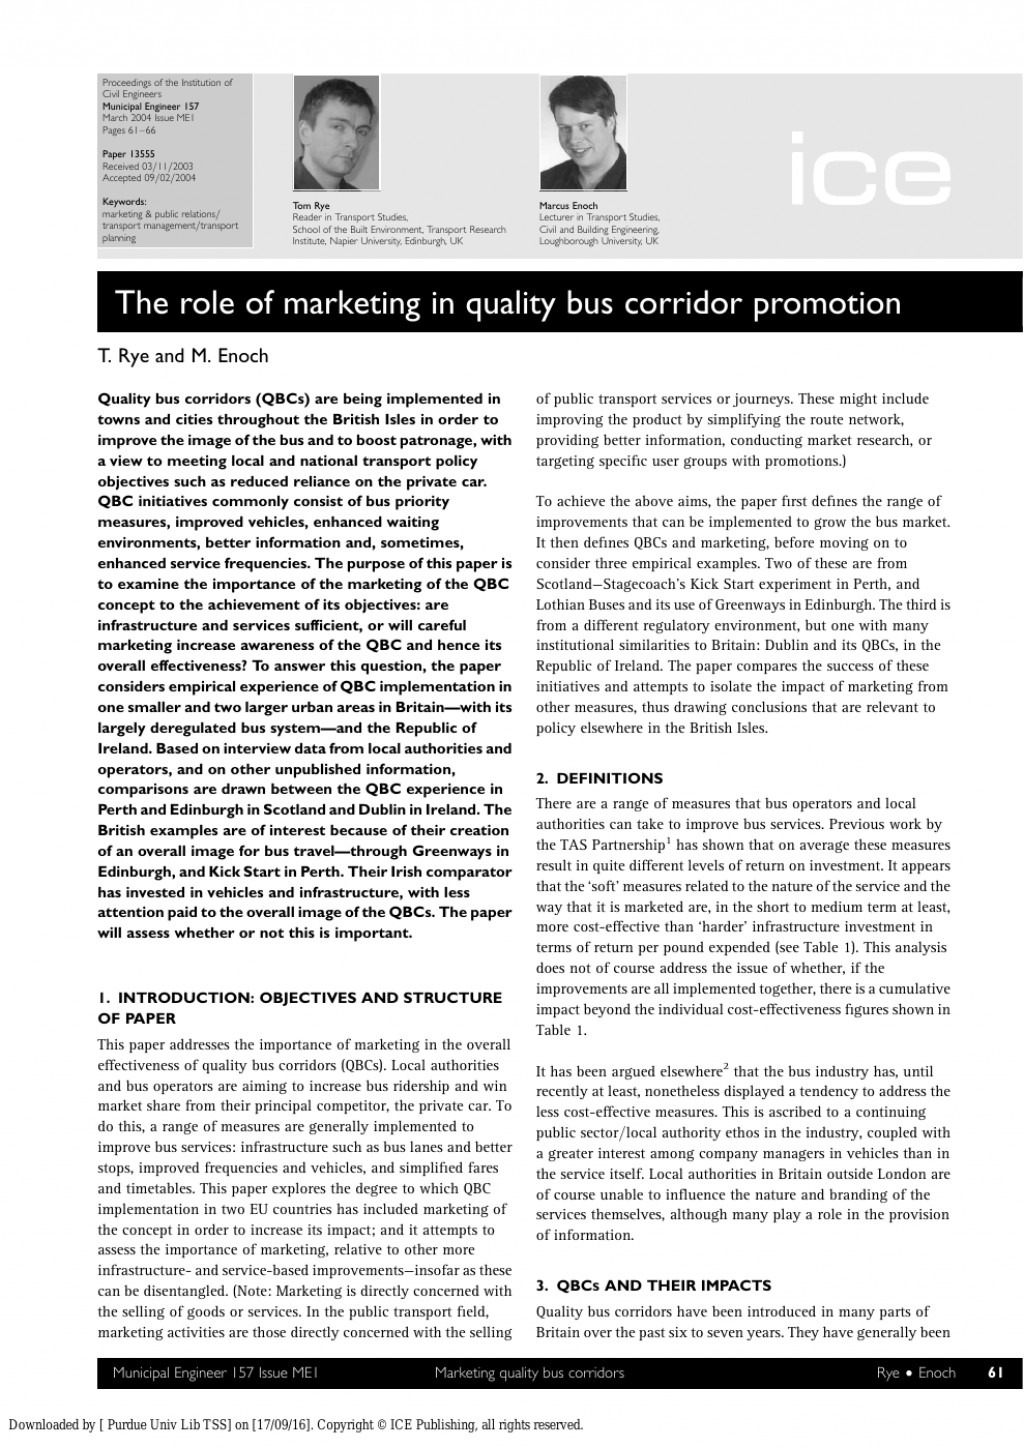 010 Marketing Researchs Pdf Free Download Impressive Research Papers Large